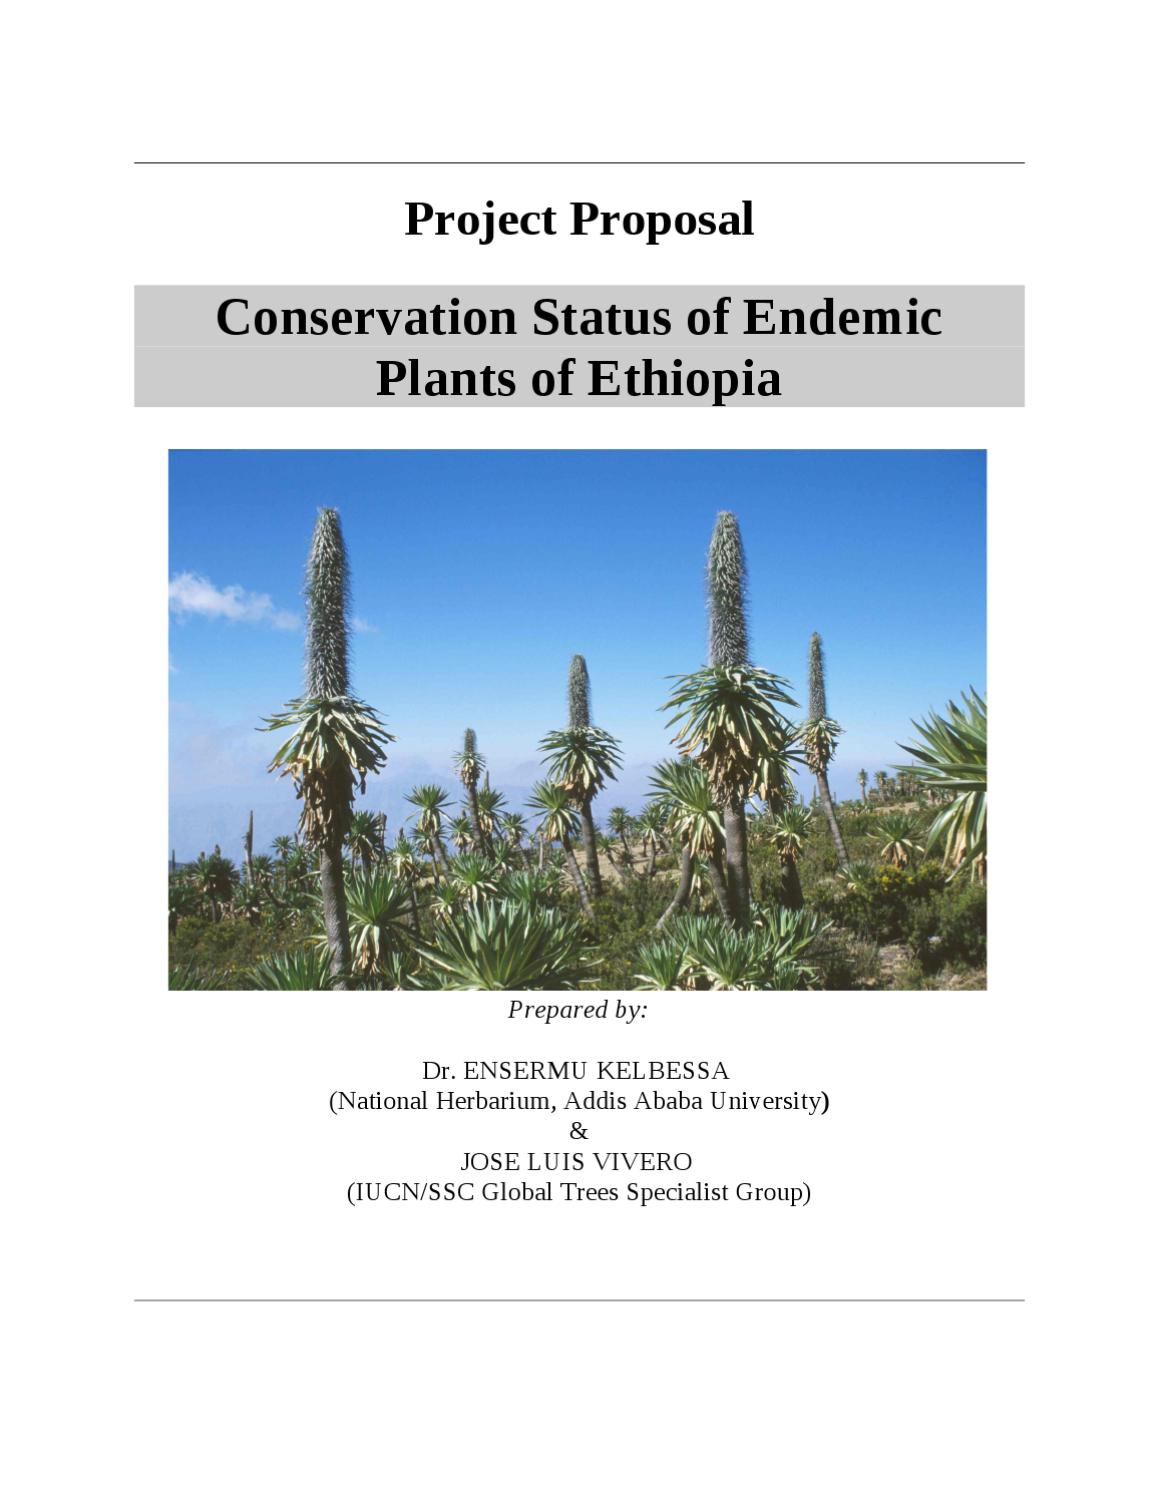 Conservation Status of Endemic Plants of Ethiopia FINAL